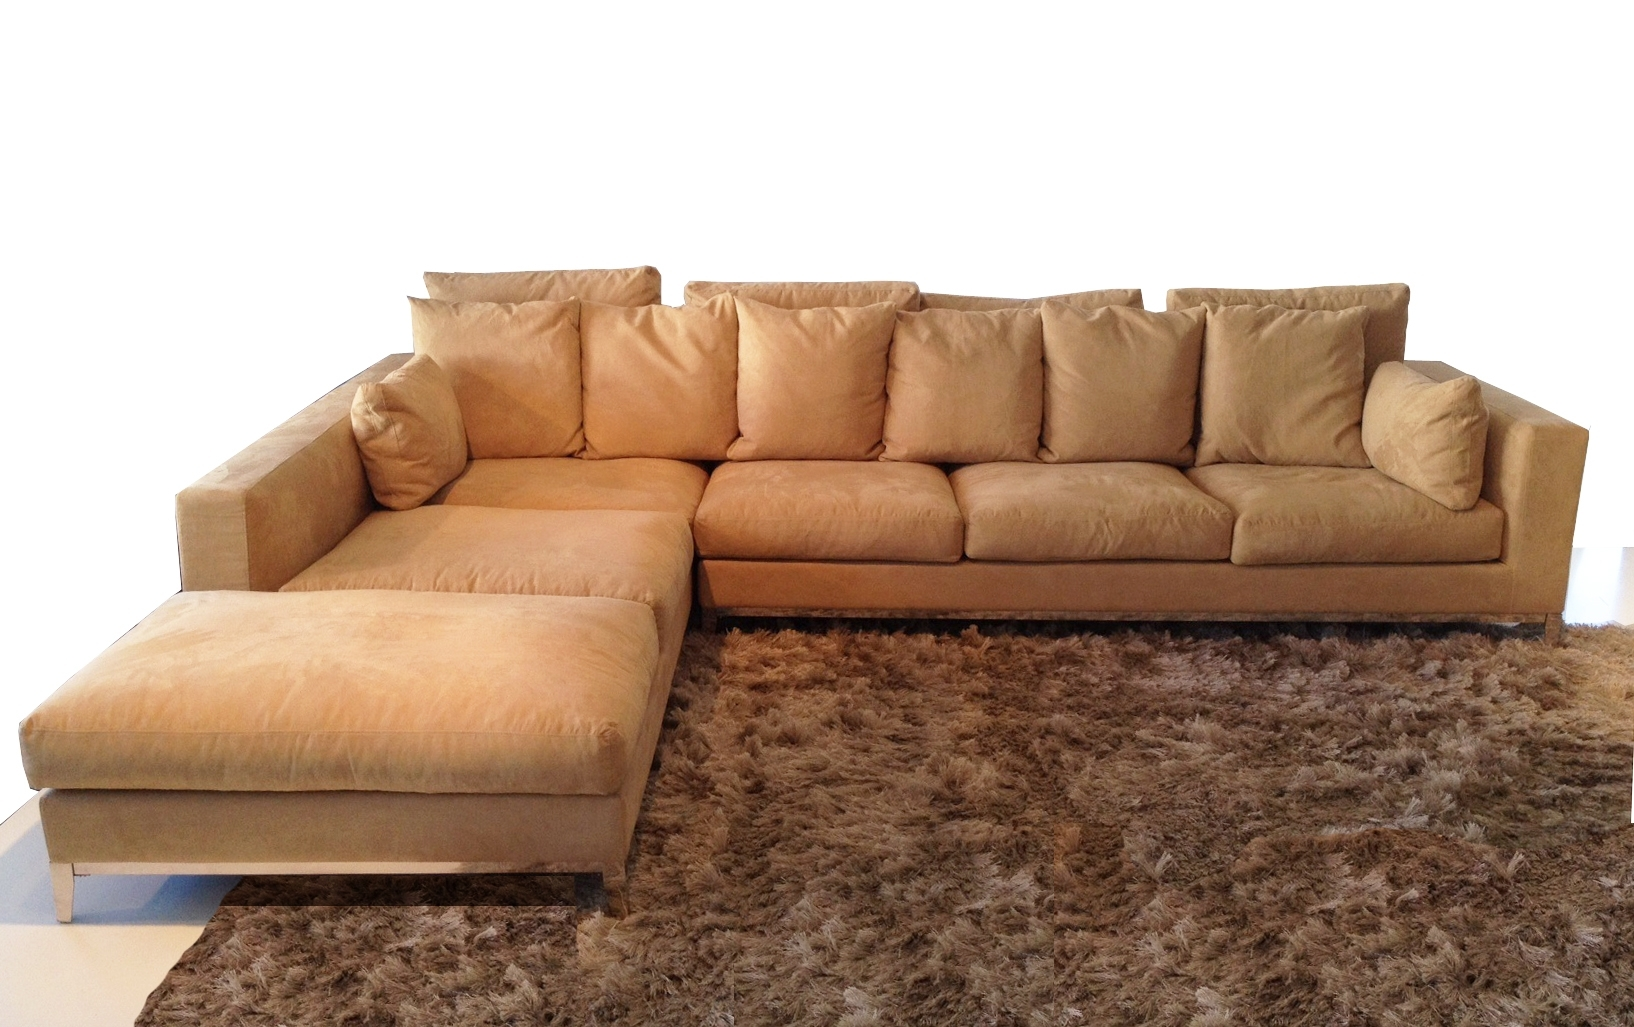 Sectional Sofas With Stainless Steel Legs | Modern Furniture Throughout Removable Covers Sectional Sofas (View 8 of 10)